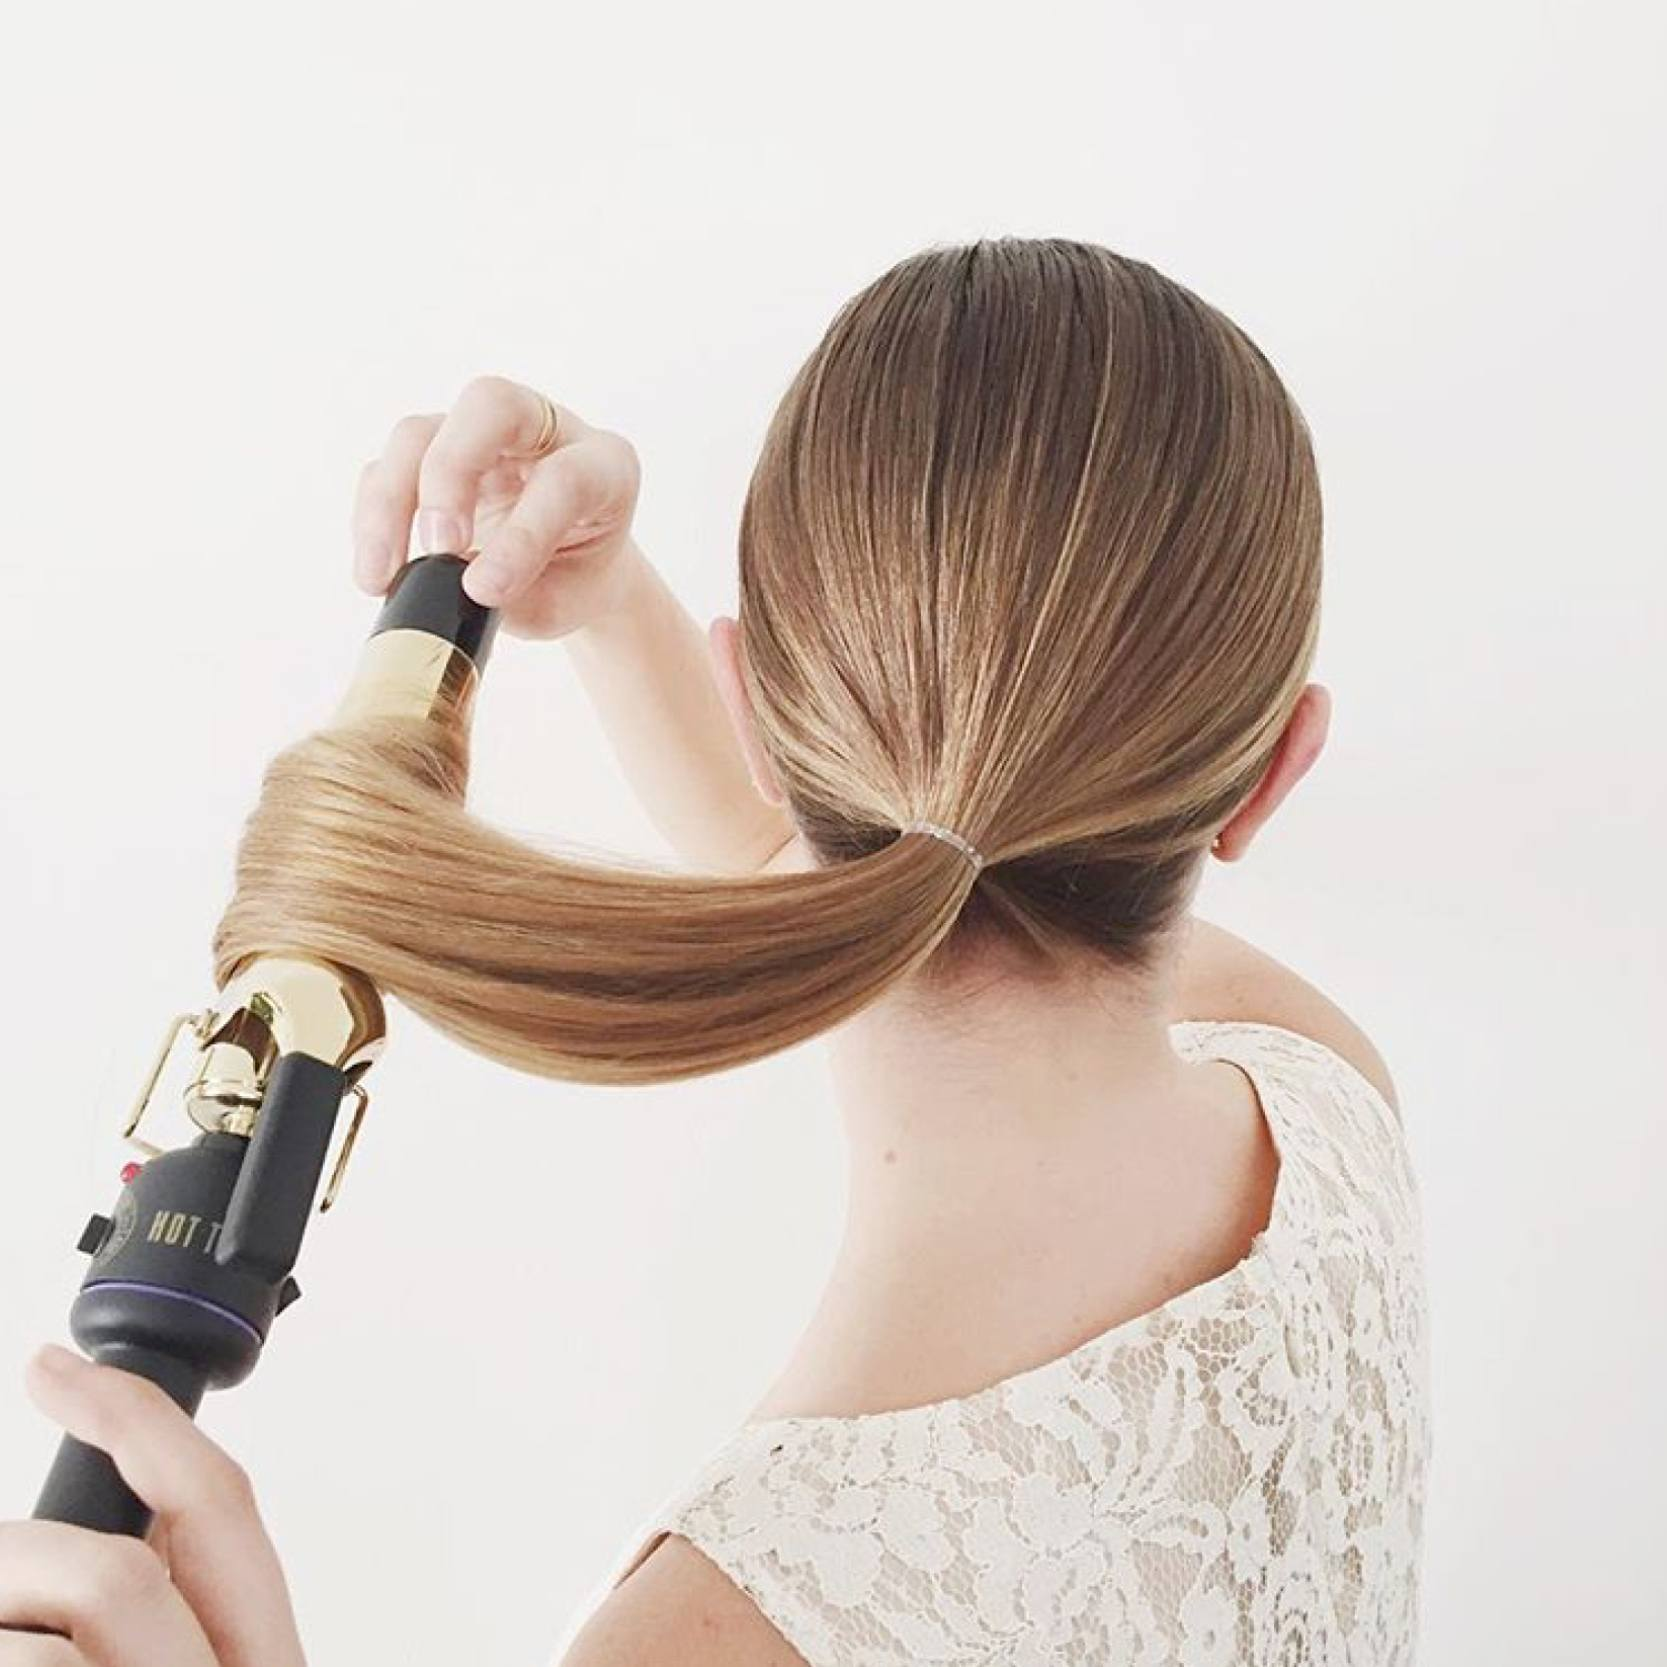 Model curls her hair away from her face using a curling iron.